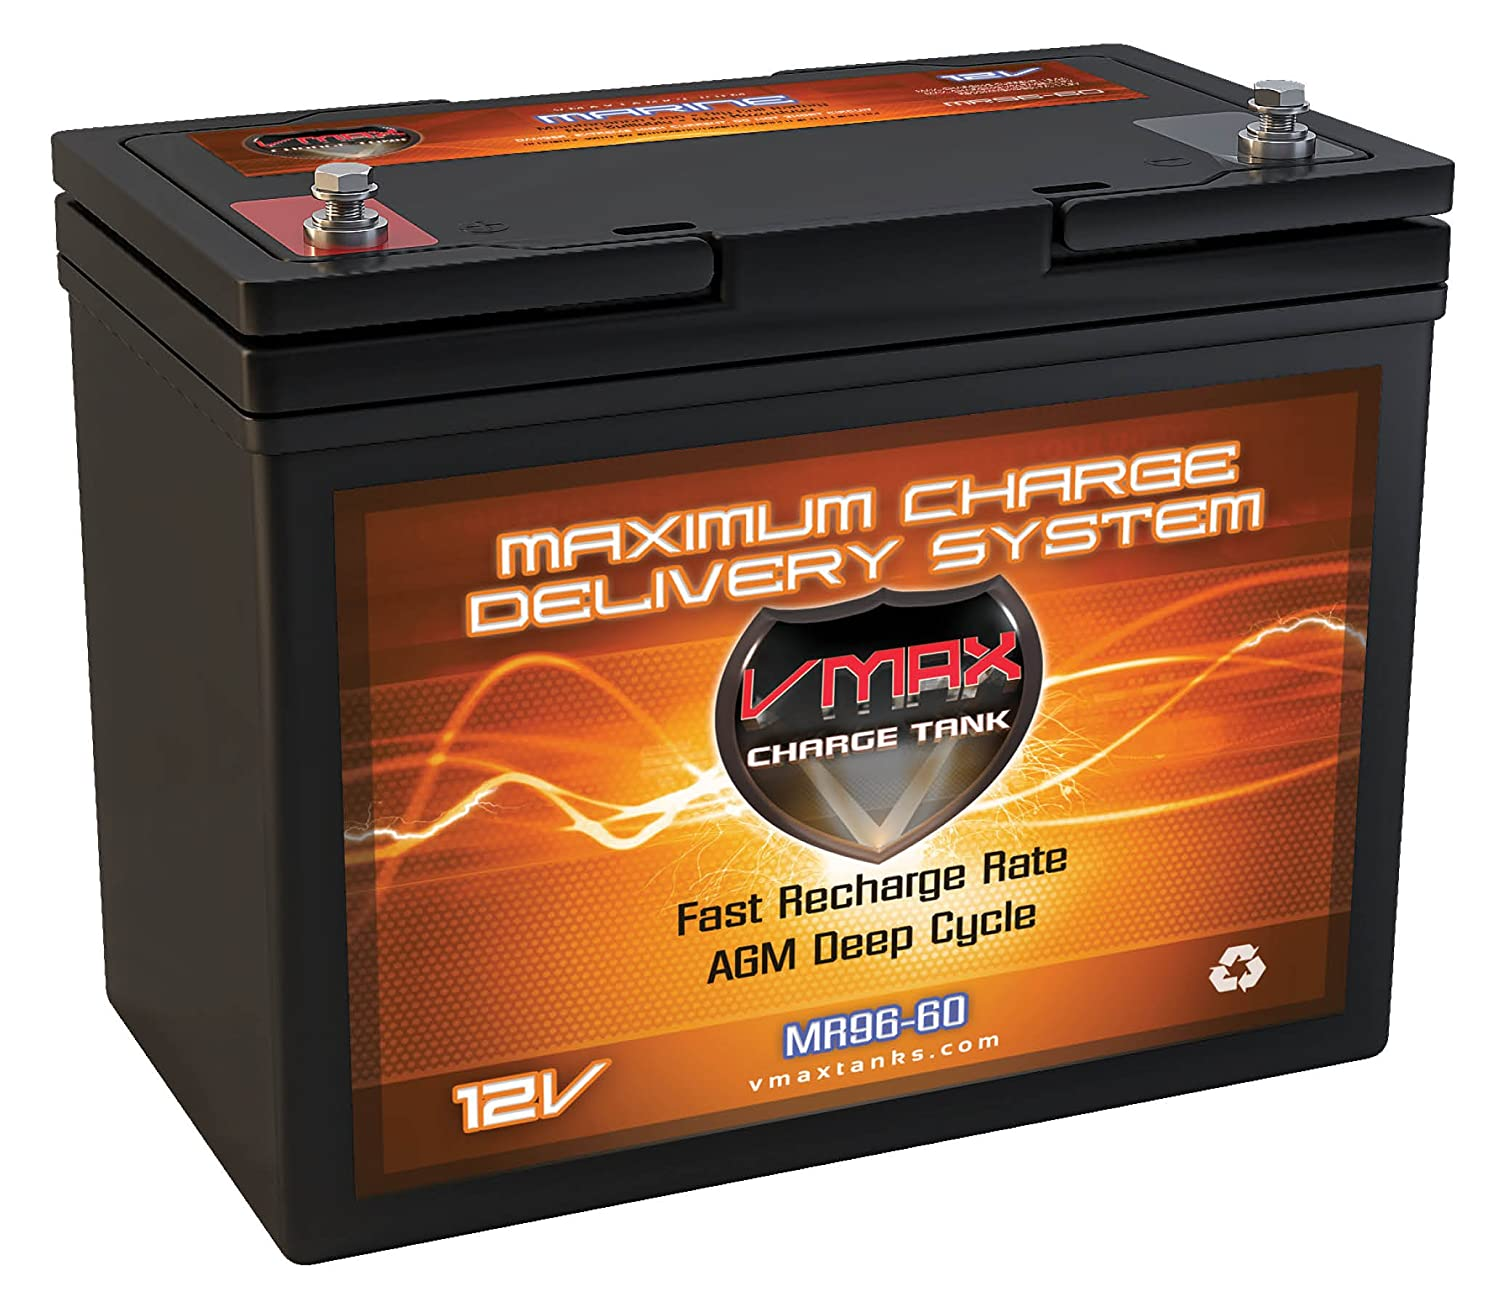 VMAX MR96-60 AGM 12V 60AH AGM Battery Deep Cycle High Performance Battery for 24-50lb thrust Minn Kota, Cobra, Sevylor and other electric trolling motors (Group 22NF, UPGRADES ANY 55AH 22NF BATTERY) VMAXTANKS MR96-1200